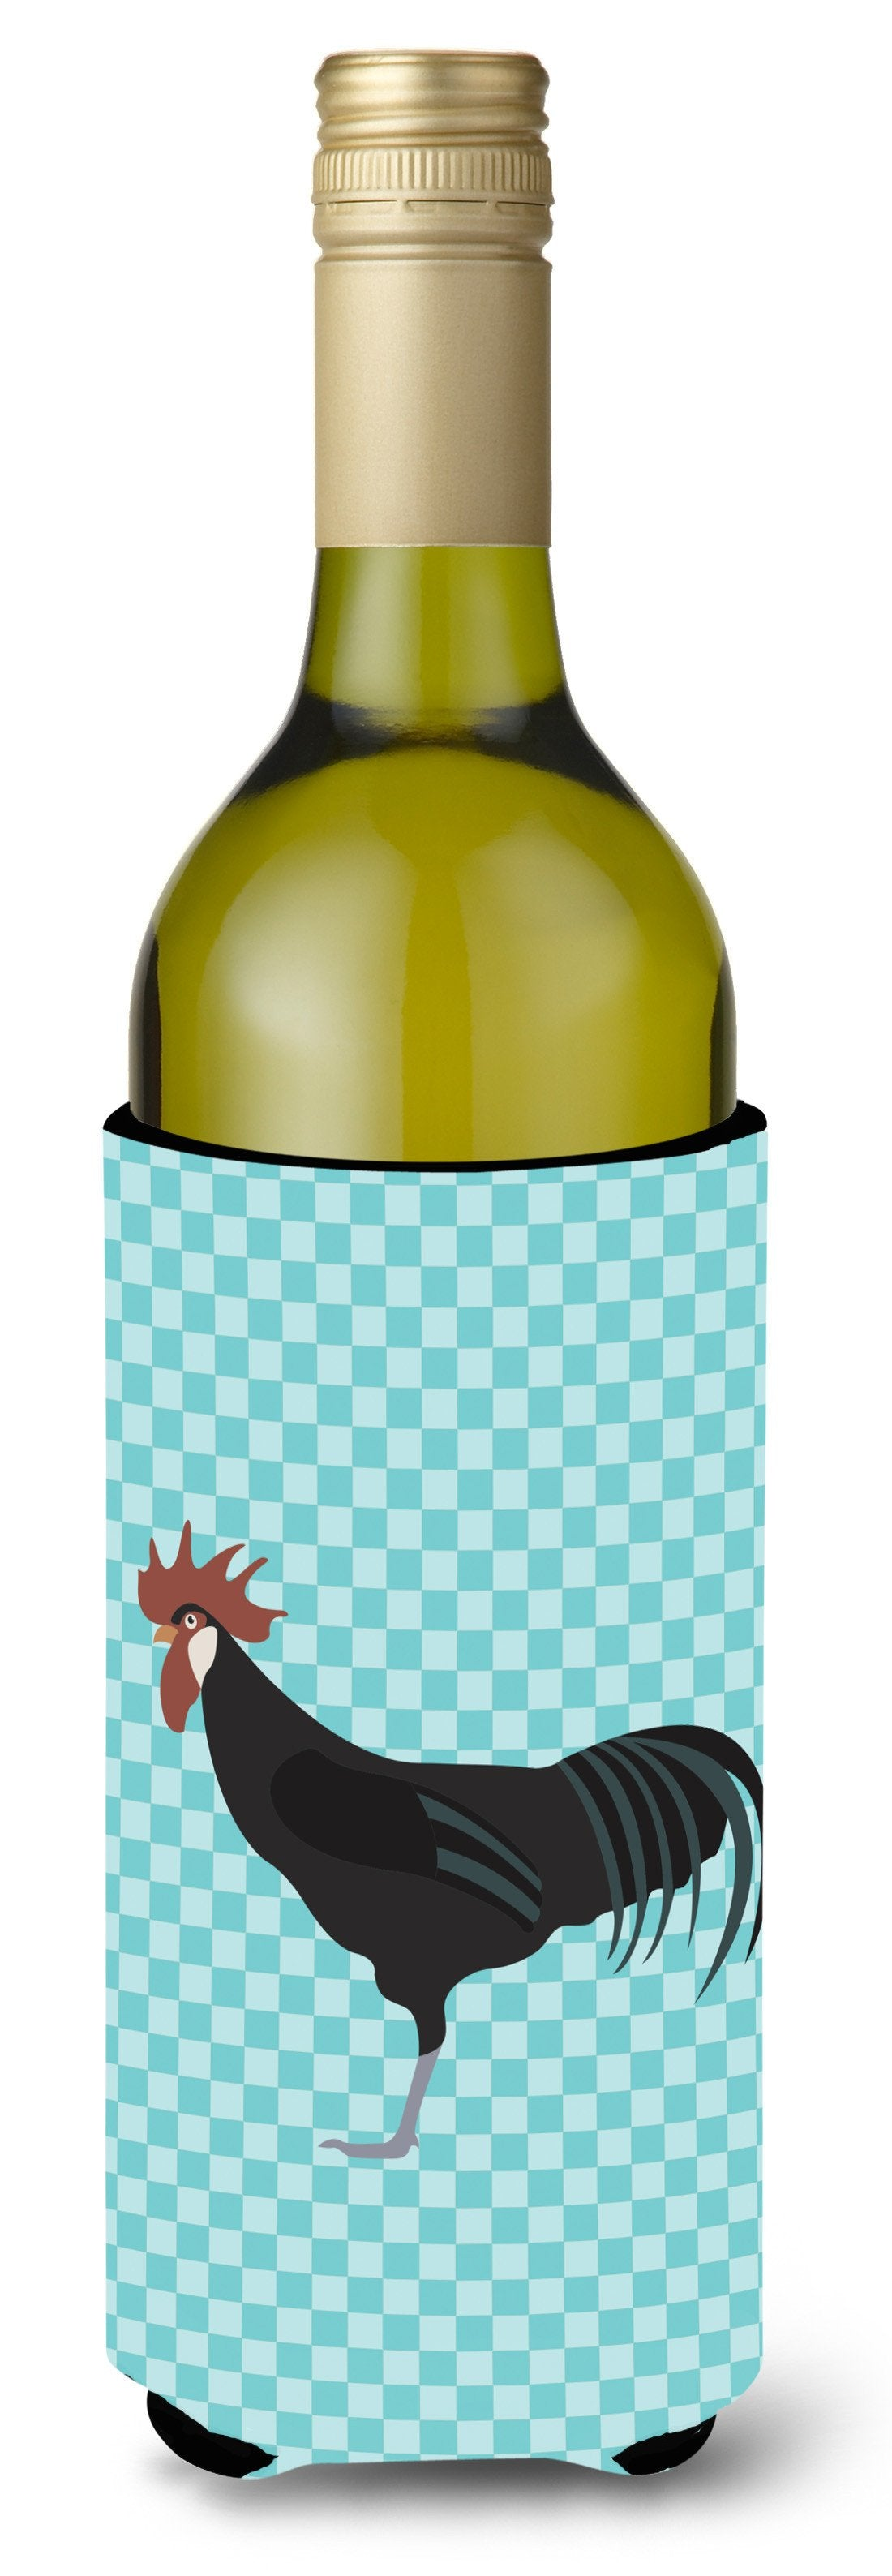 Minorca Ctalalan Chicken Blue Check Wine Bottle Beverge Insulator Hugger BB8015LITERK by Caroline's Treasures